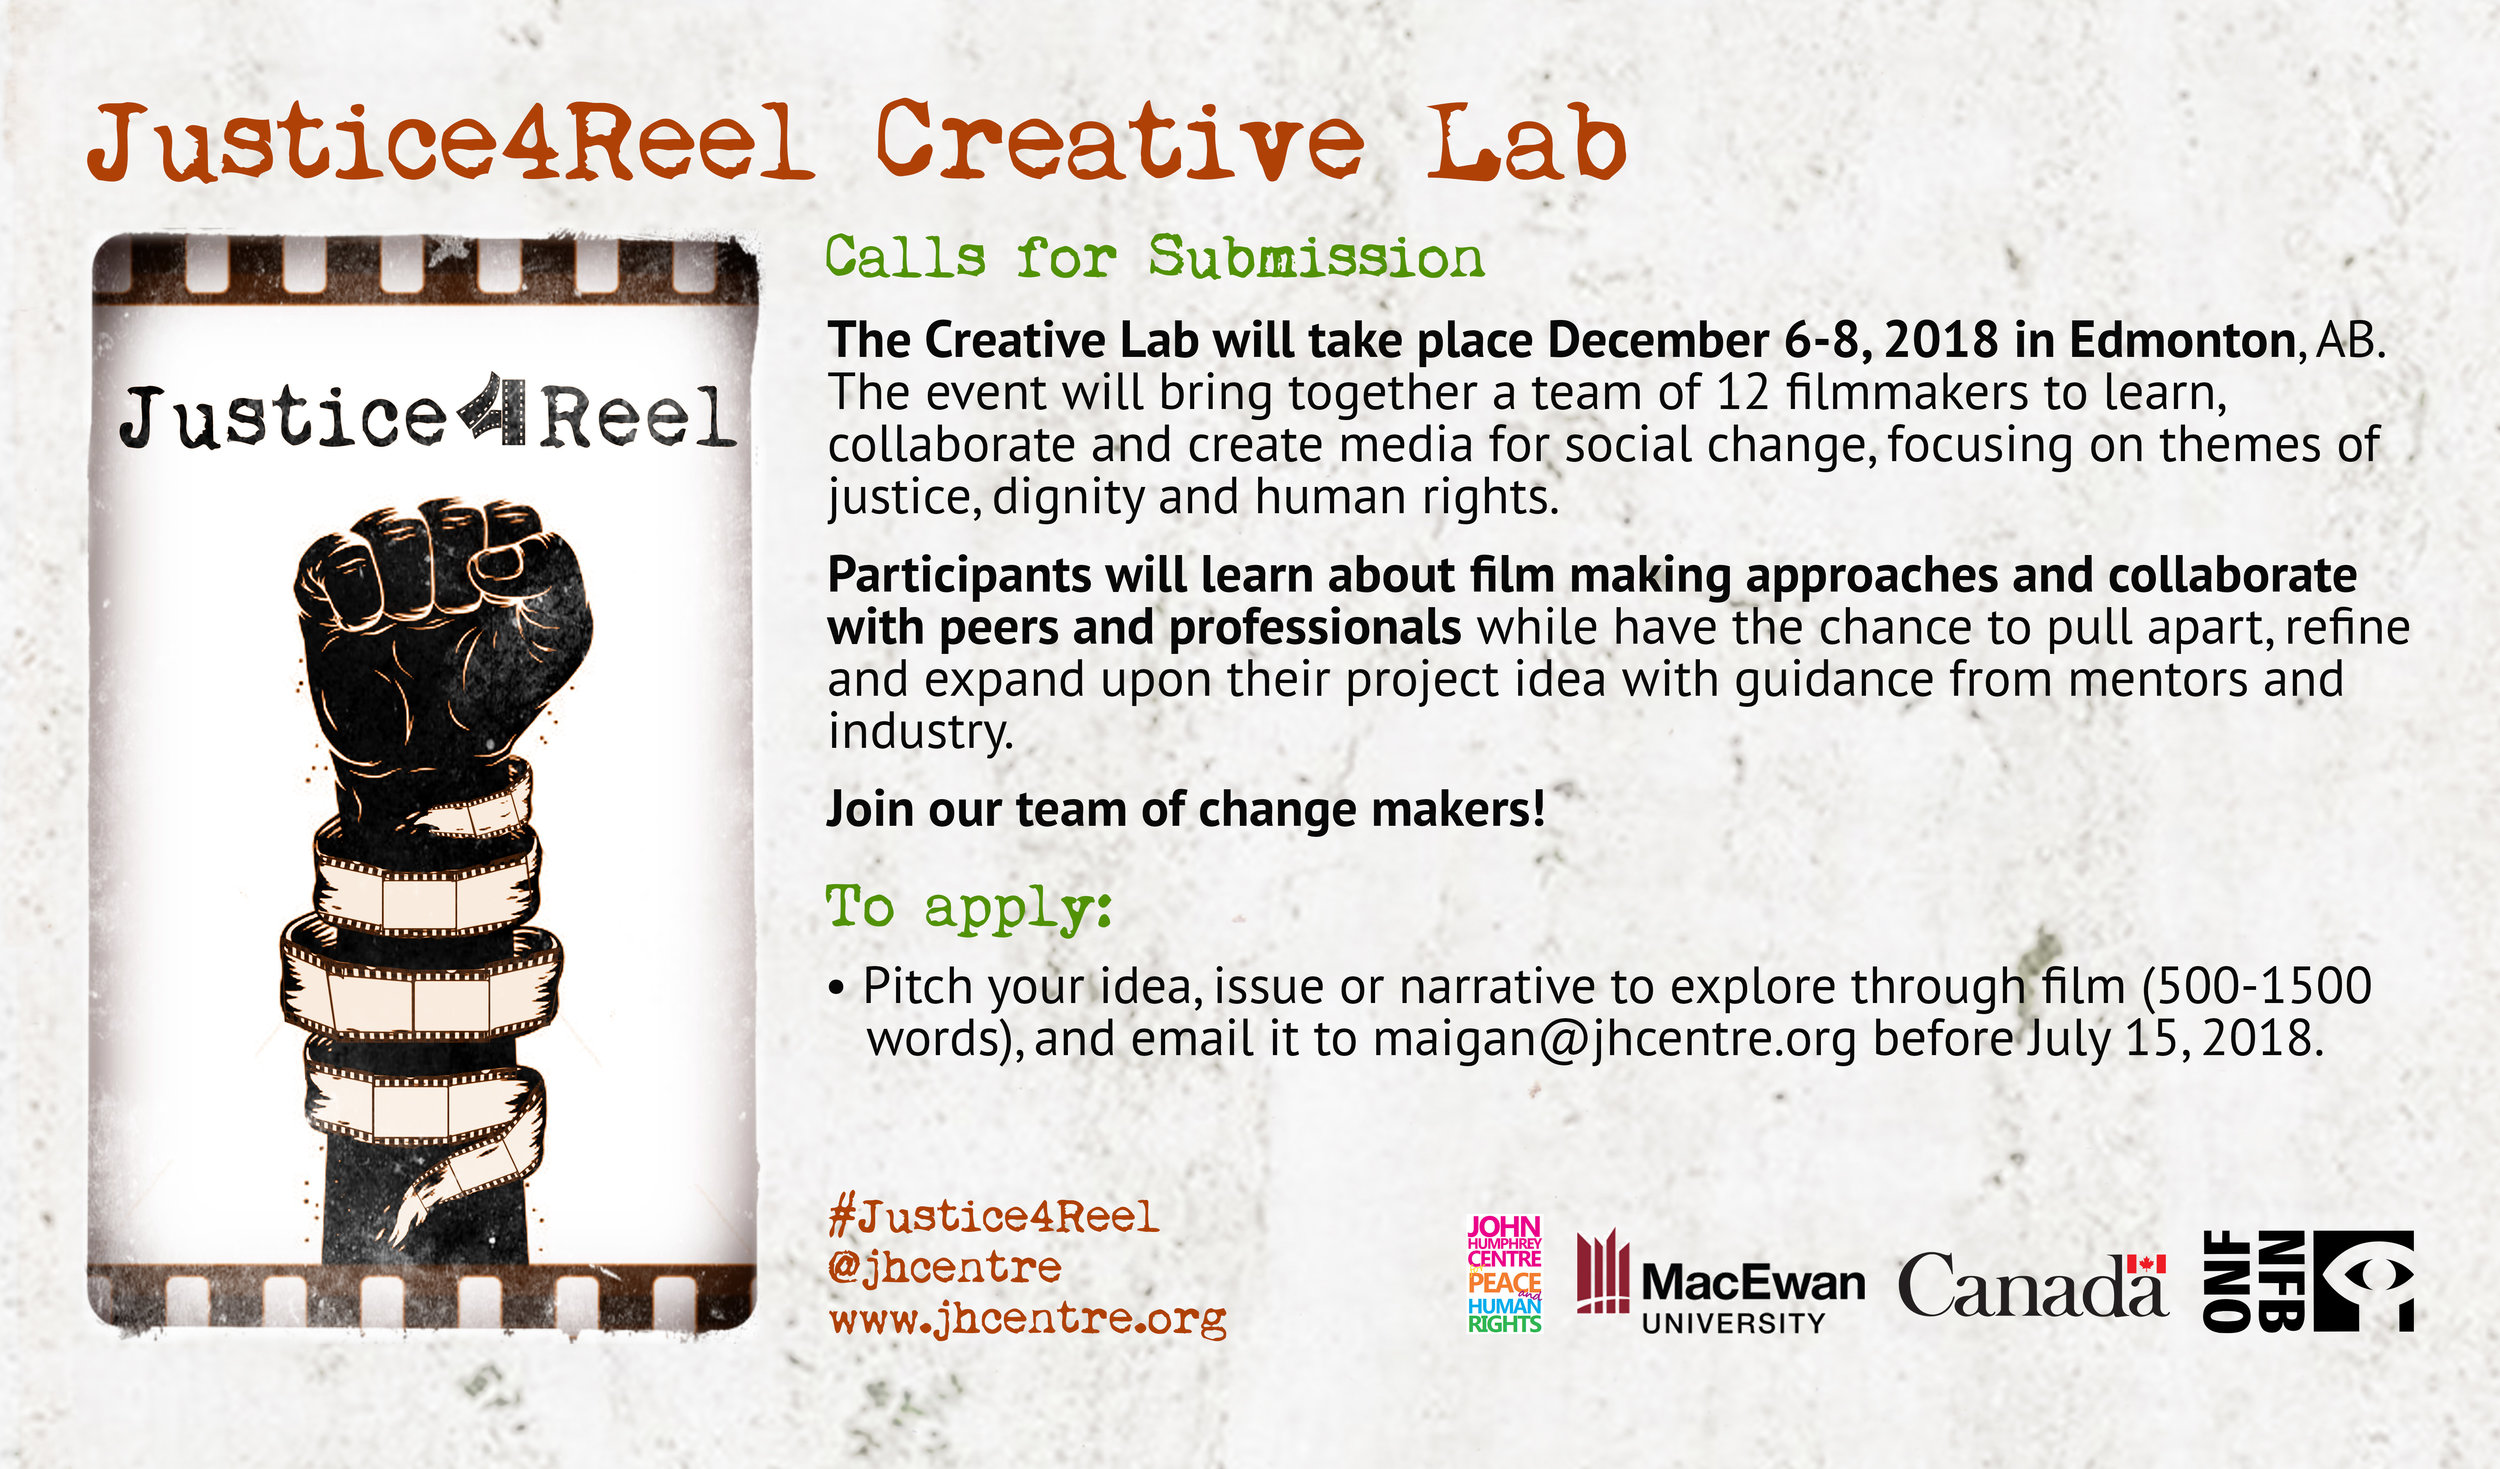 Justice4Reel Call For Submission 2018